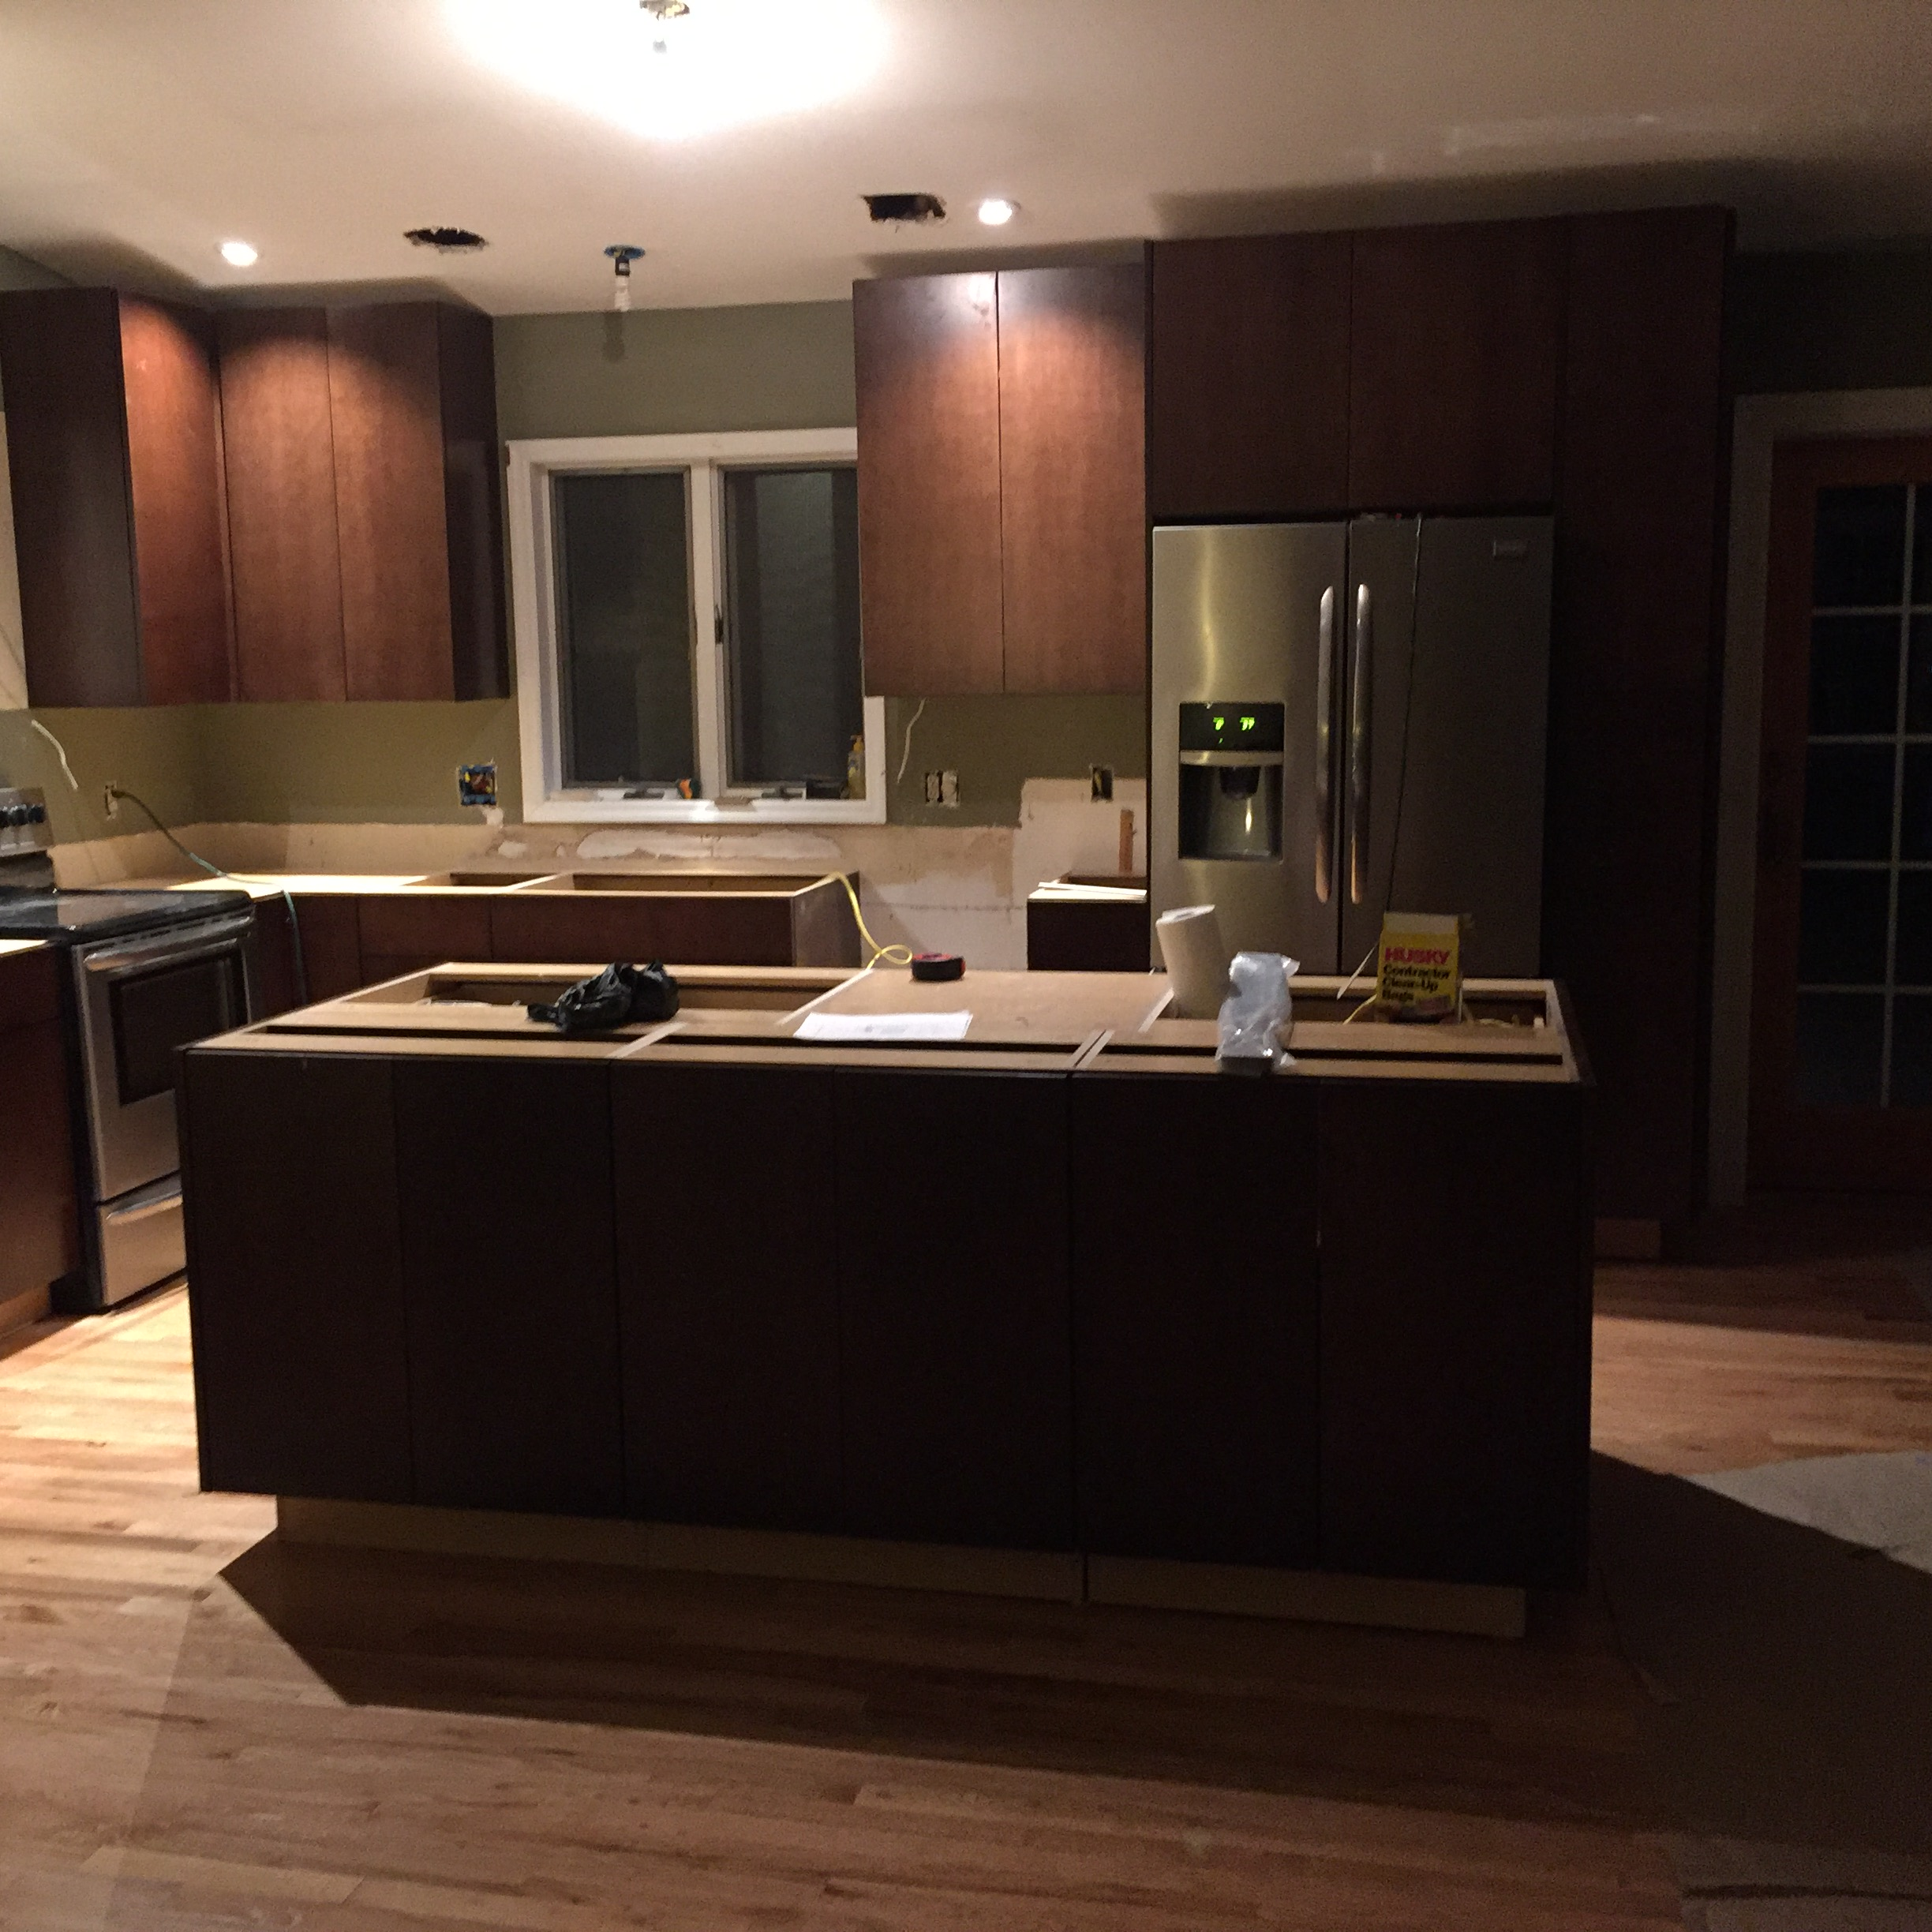 Cabinets completed view4.JPG